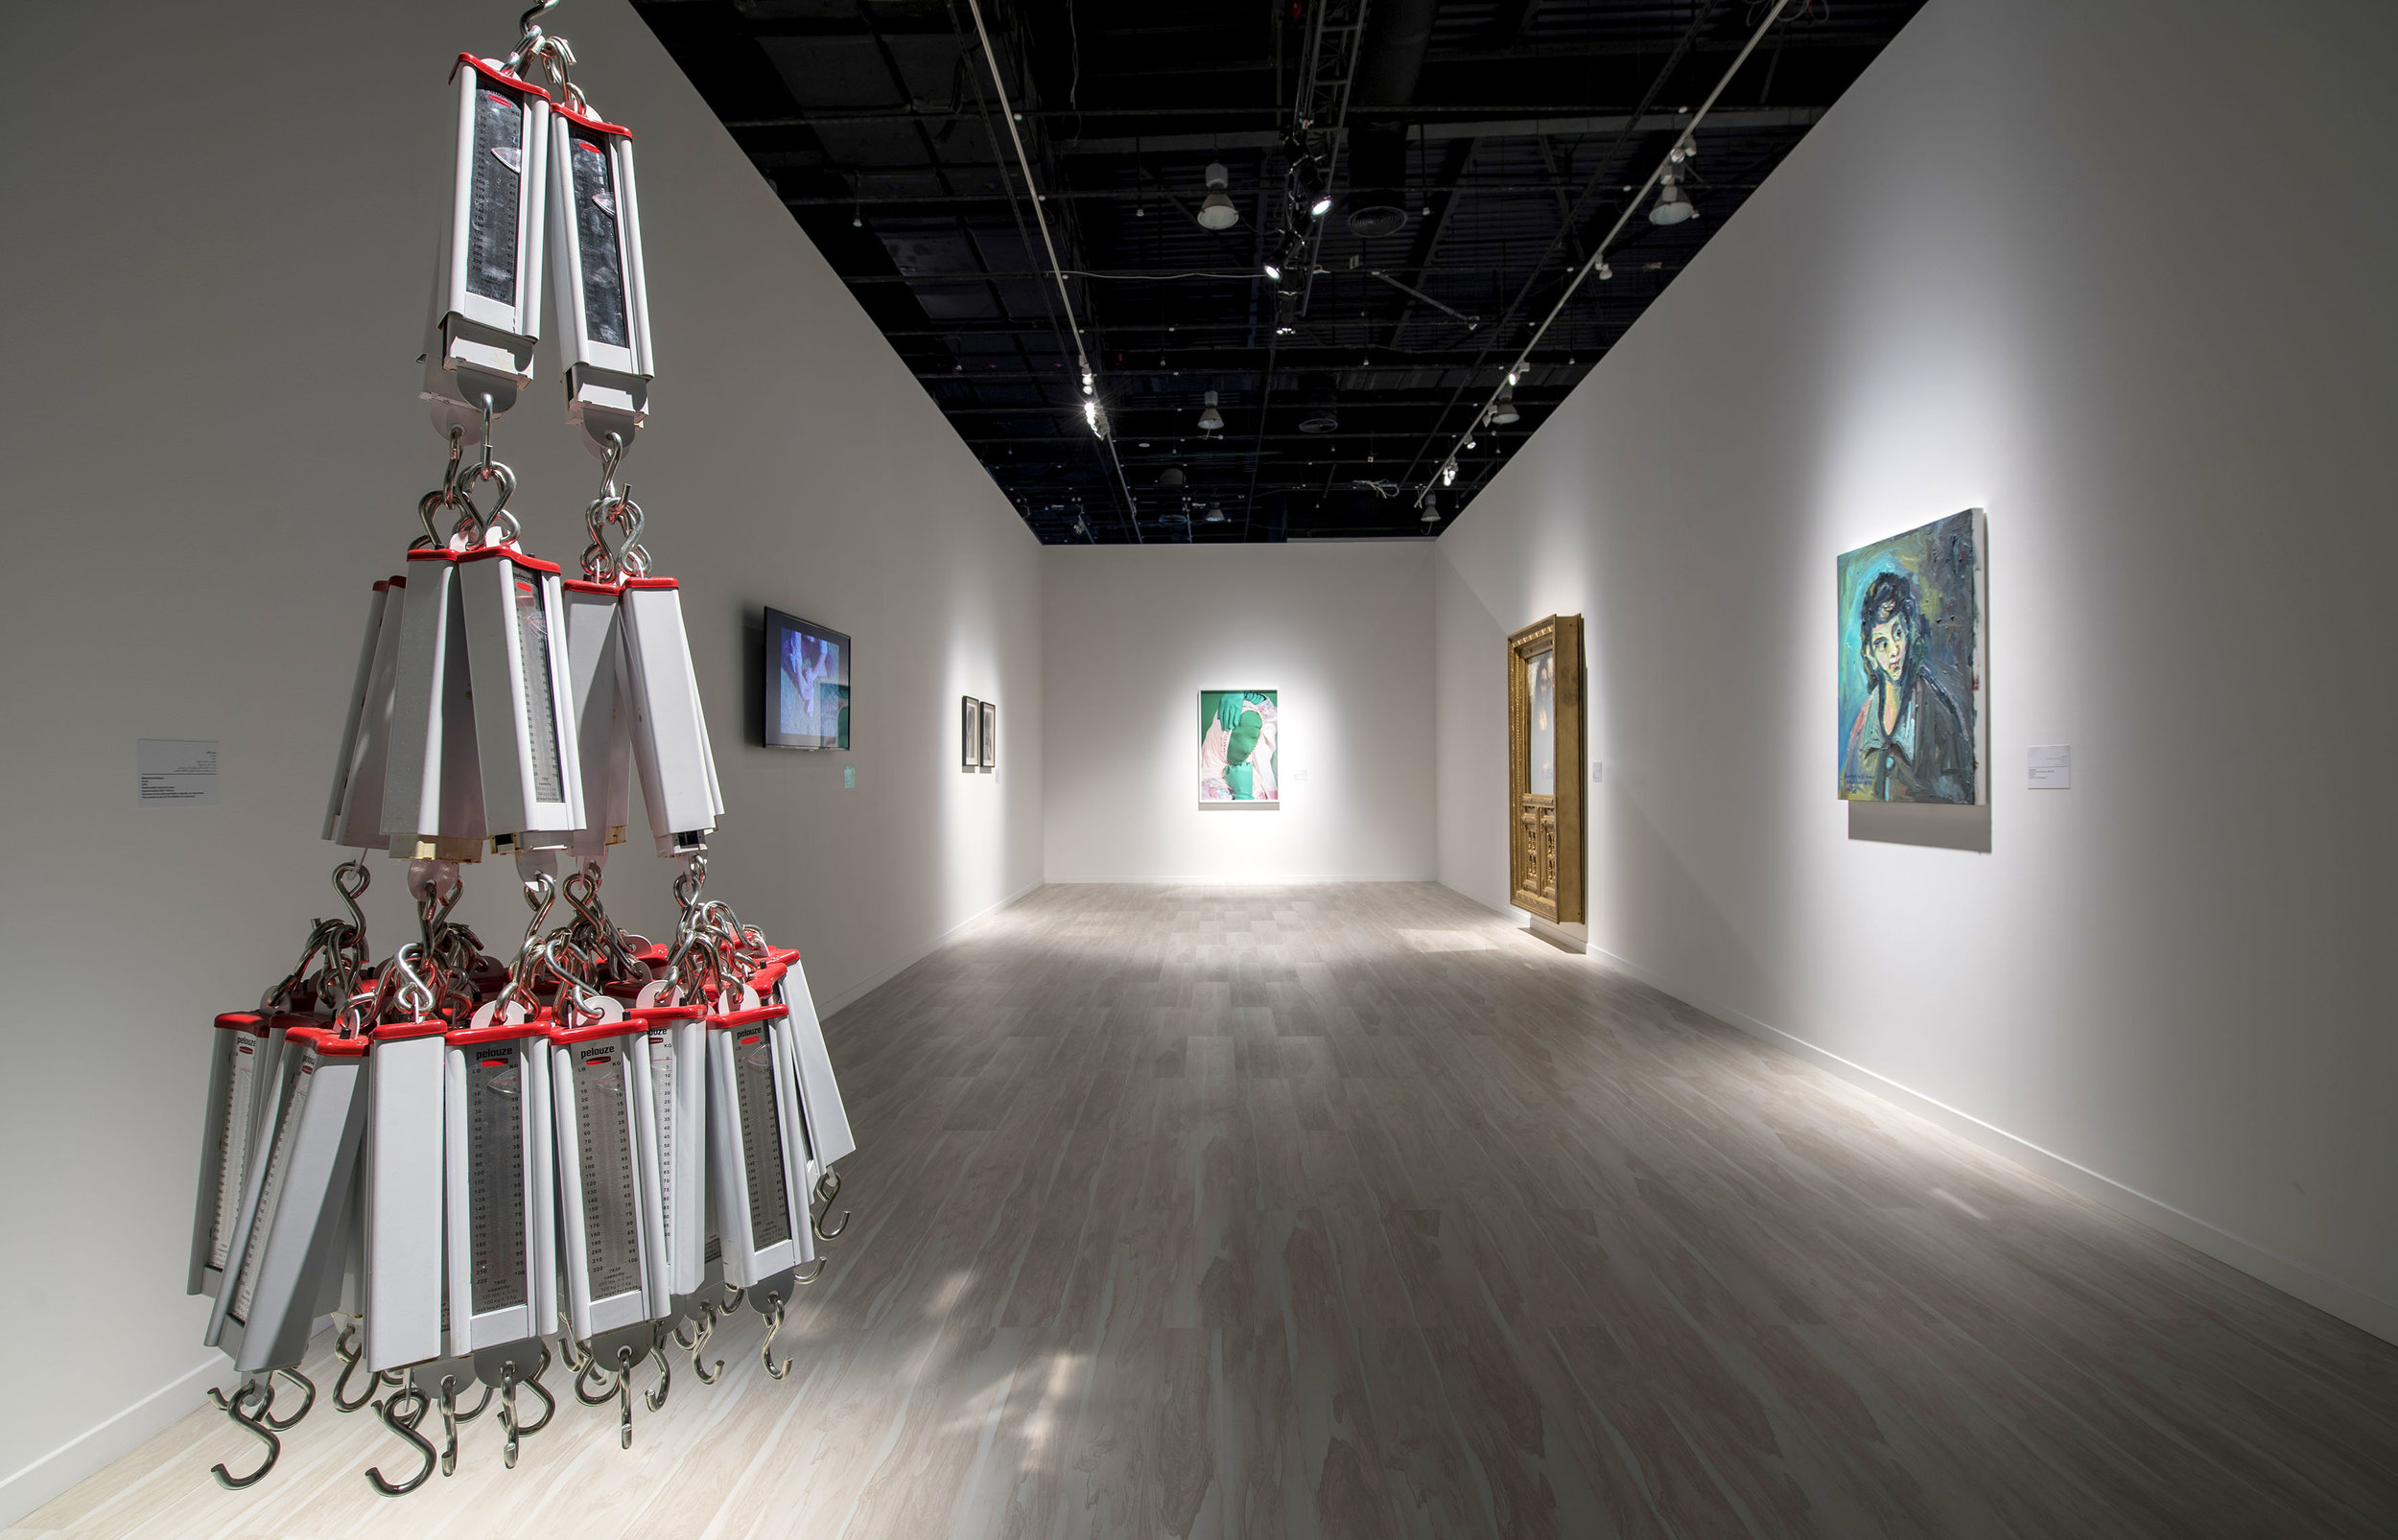 Mohammed Kazem's Scale hangs in the first section of Emirati art. On the right, Hassan Sharif's painting of El Greco is visible.  © Courtesy of Abu Dhabi Festival